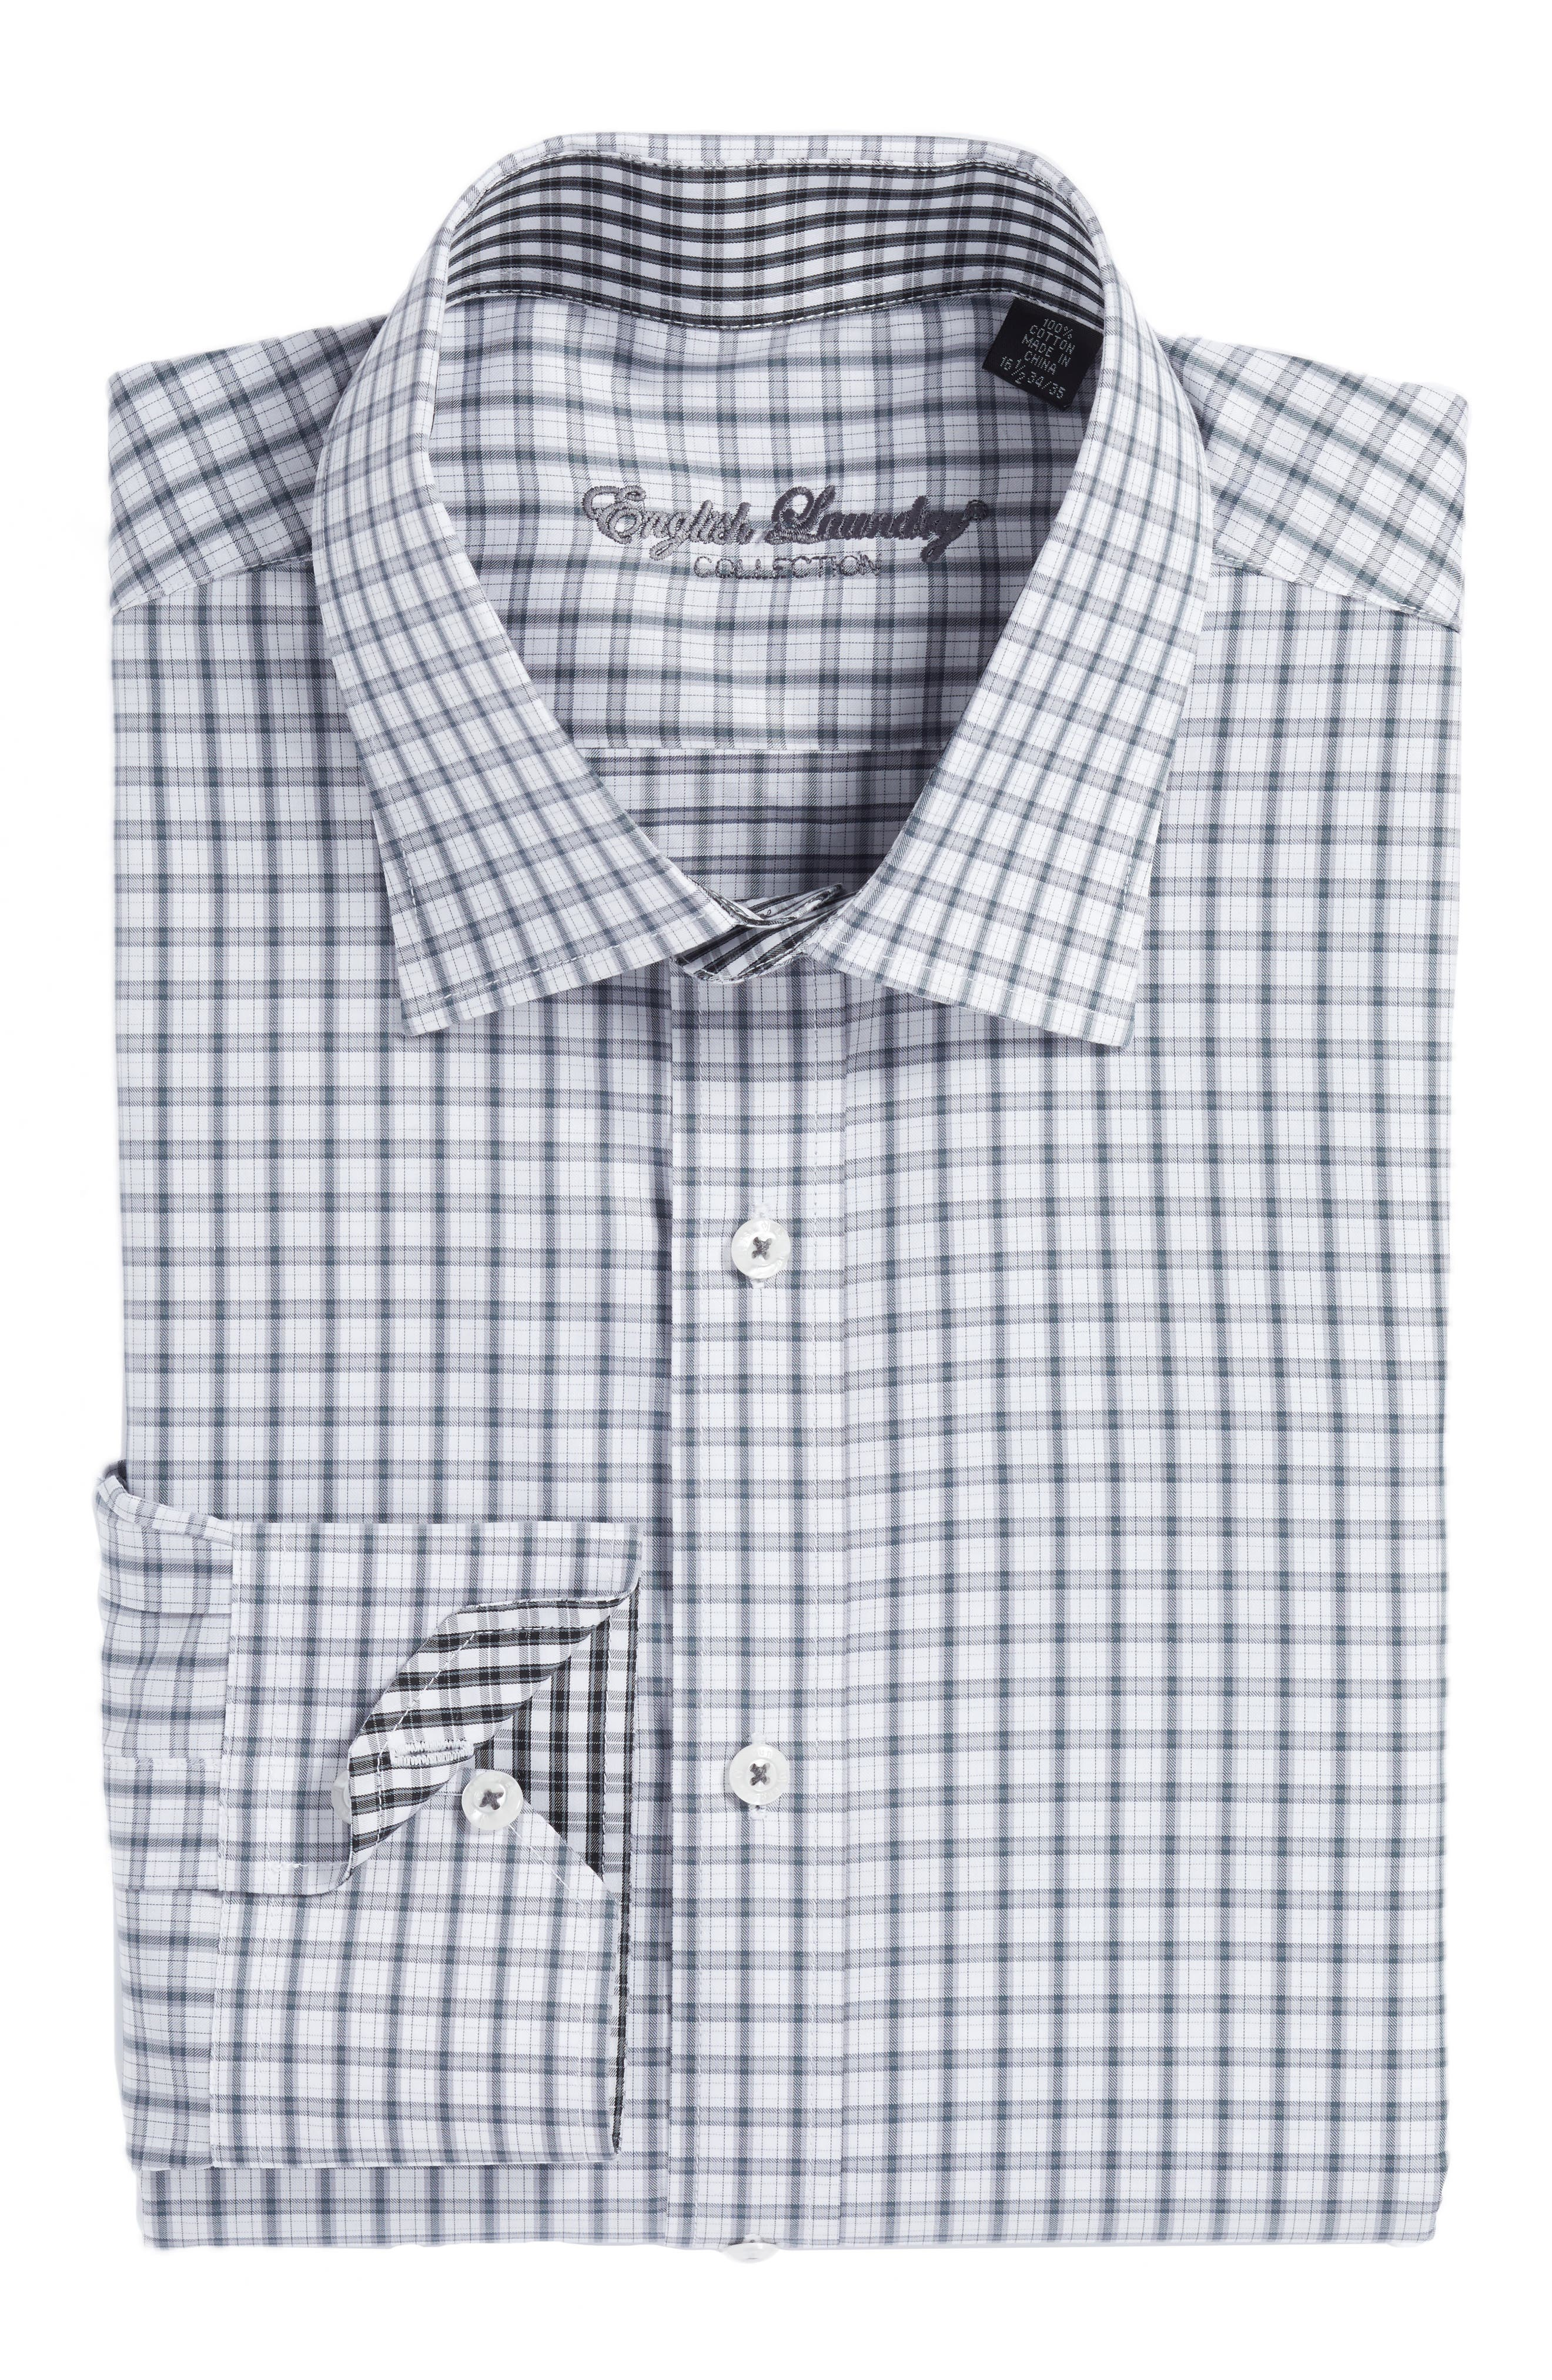 Alternate Image 1 Selected - English Laundry Trim Fit Plaid Dress Shirt